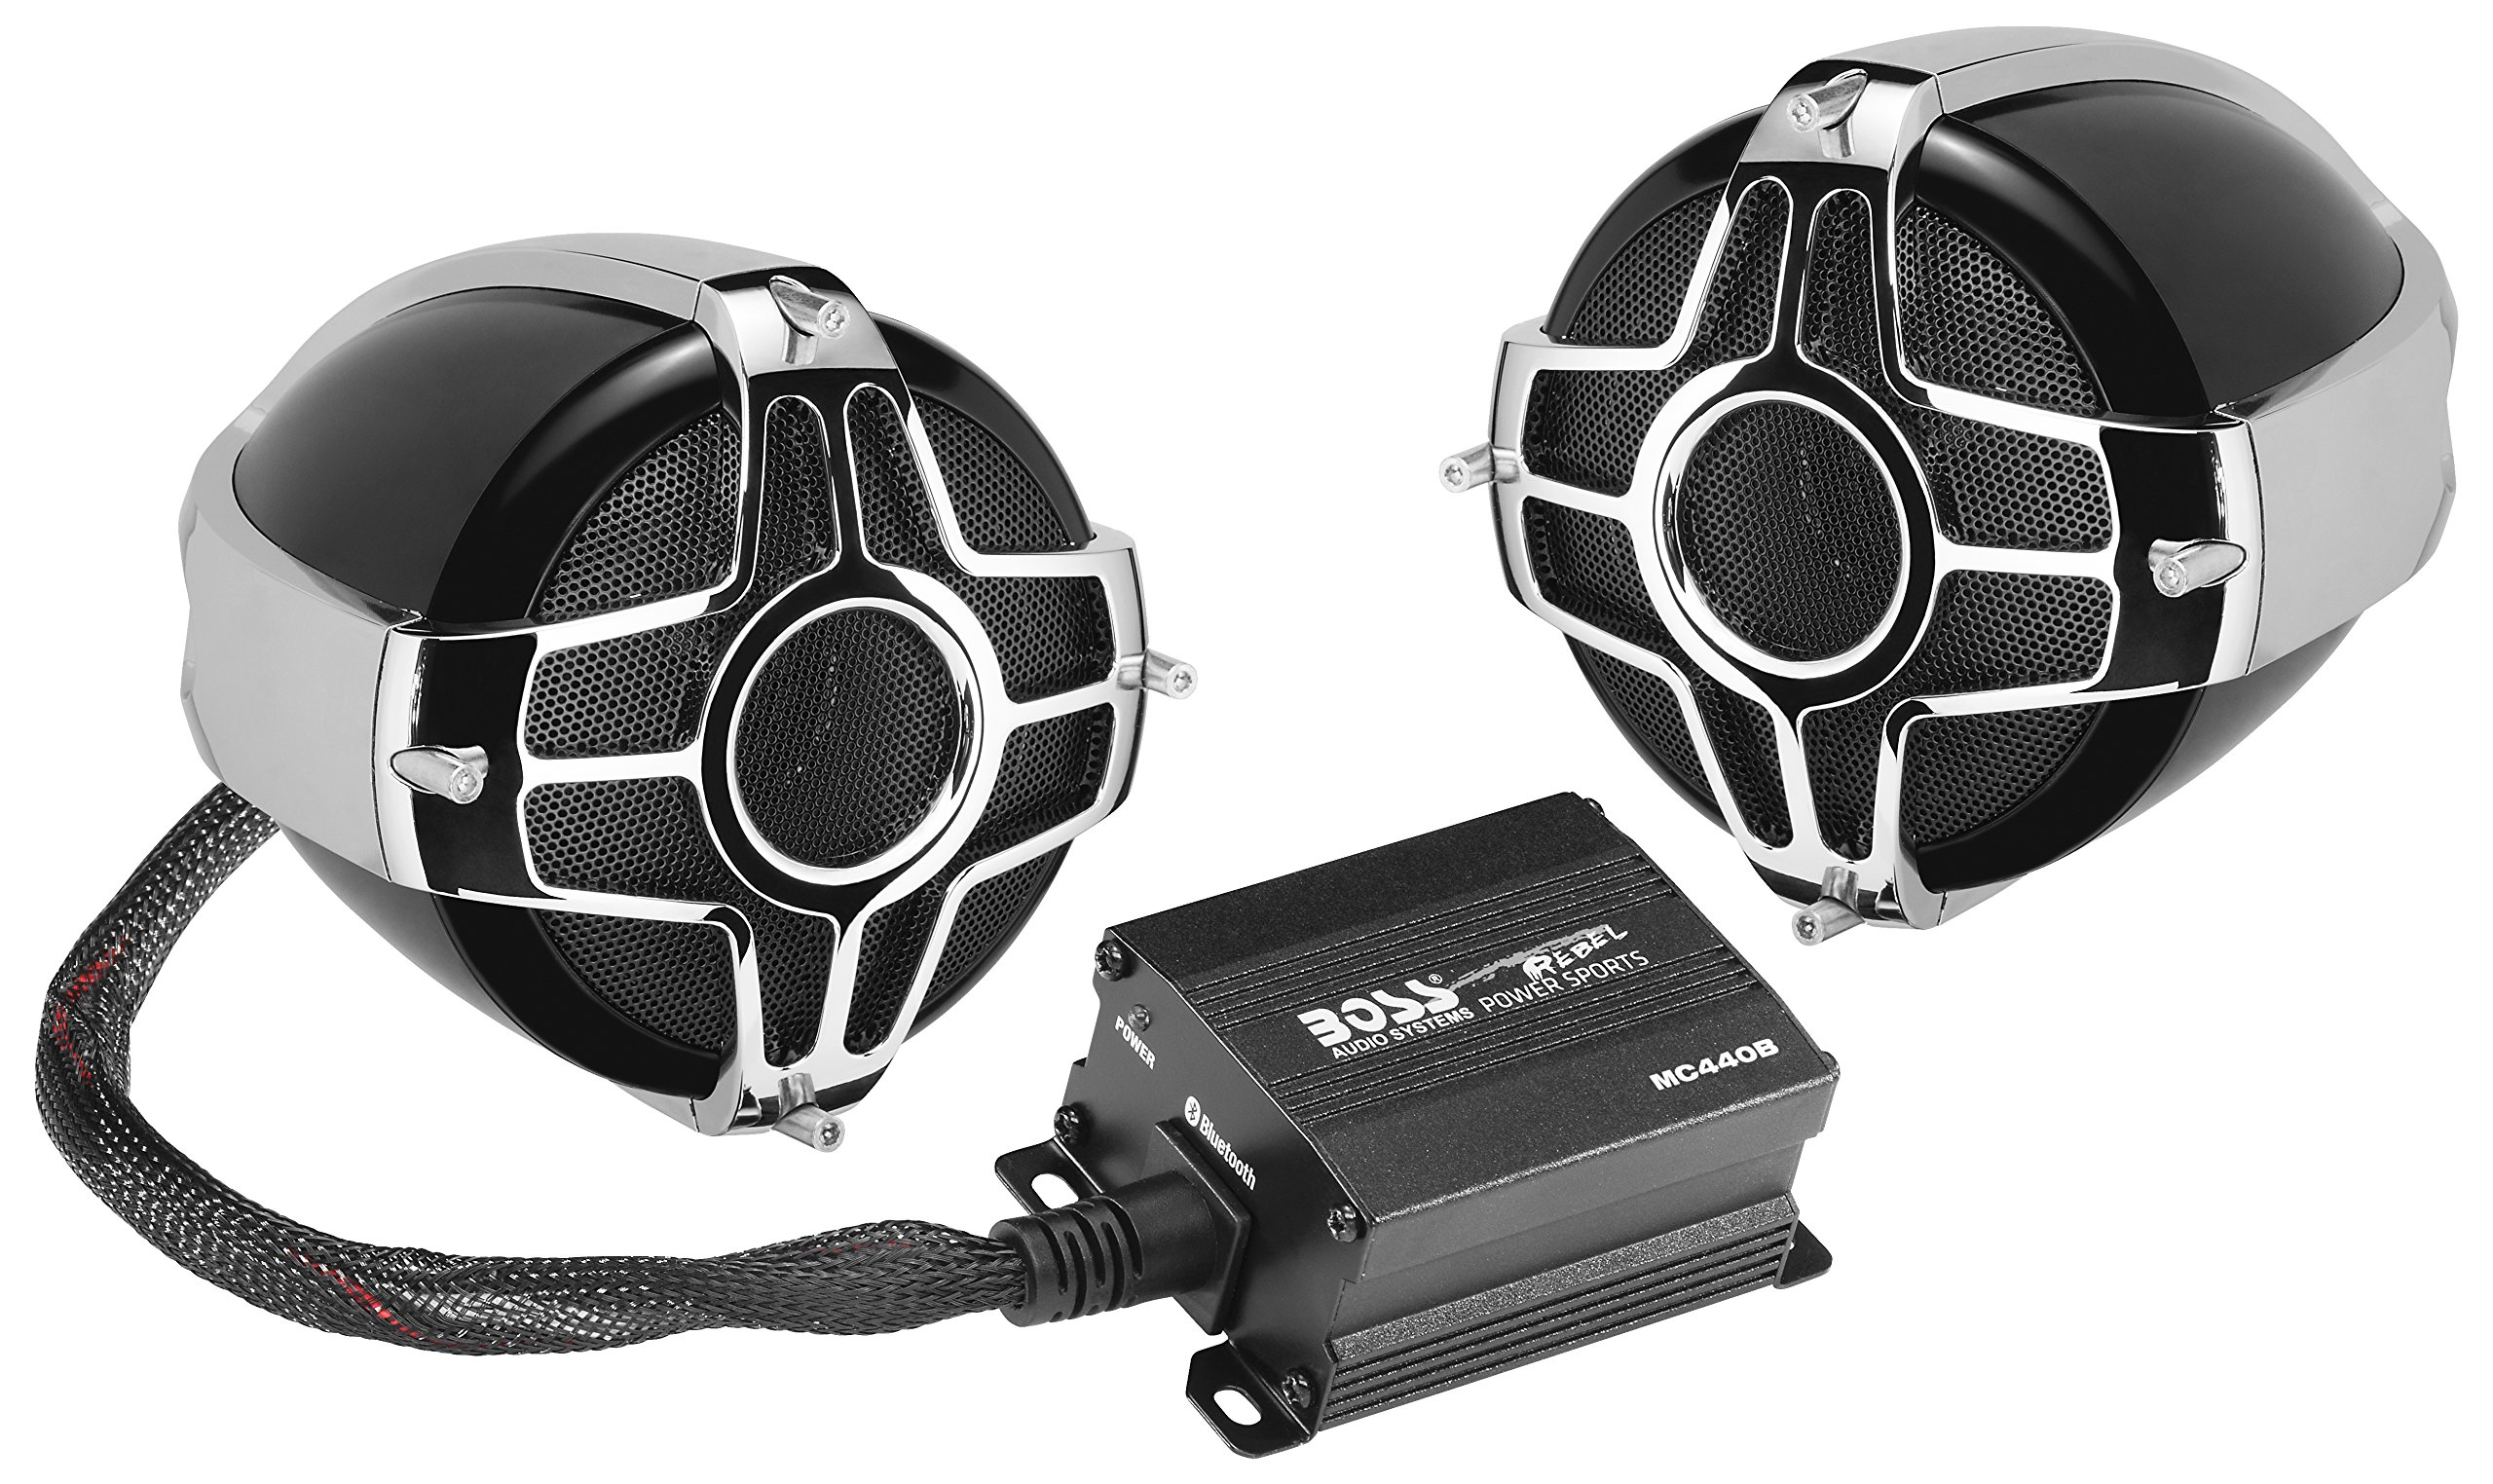 BOSS Audio MC440B Bluetooth, Weatherproof Speaker And Amplifier Sound System, Two 3 Inch Speakers, Bluetooth Amplifier, Inline Volume Control, Ideal For Motorcycles/ATV and 12 Volt Applications